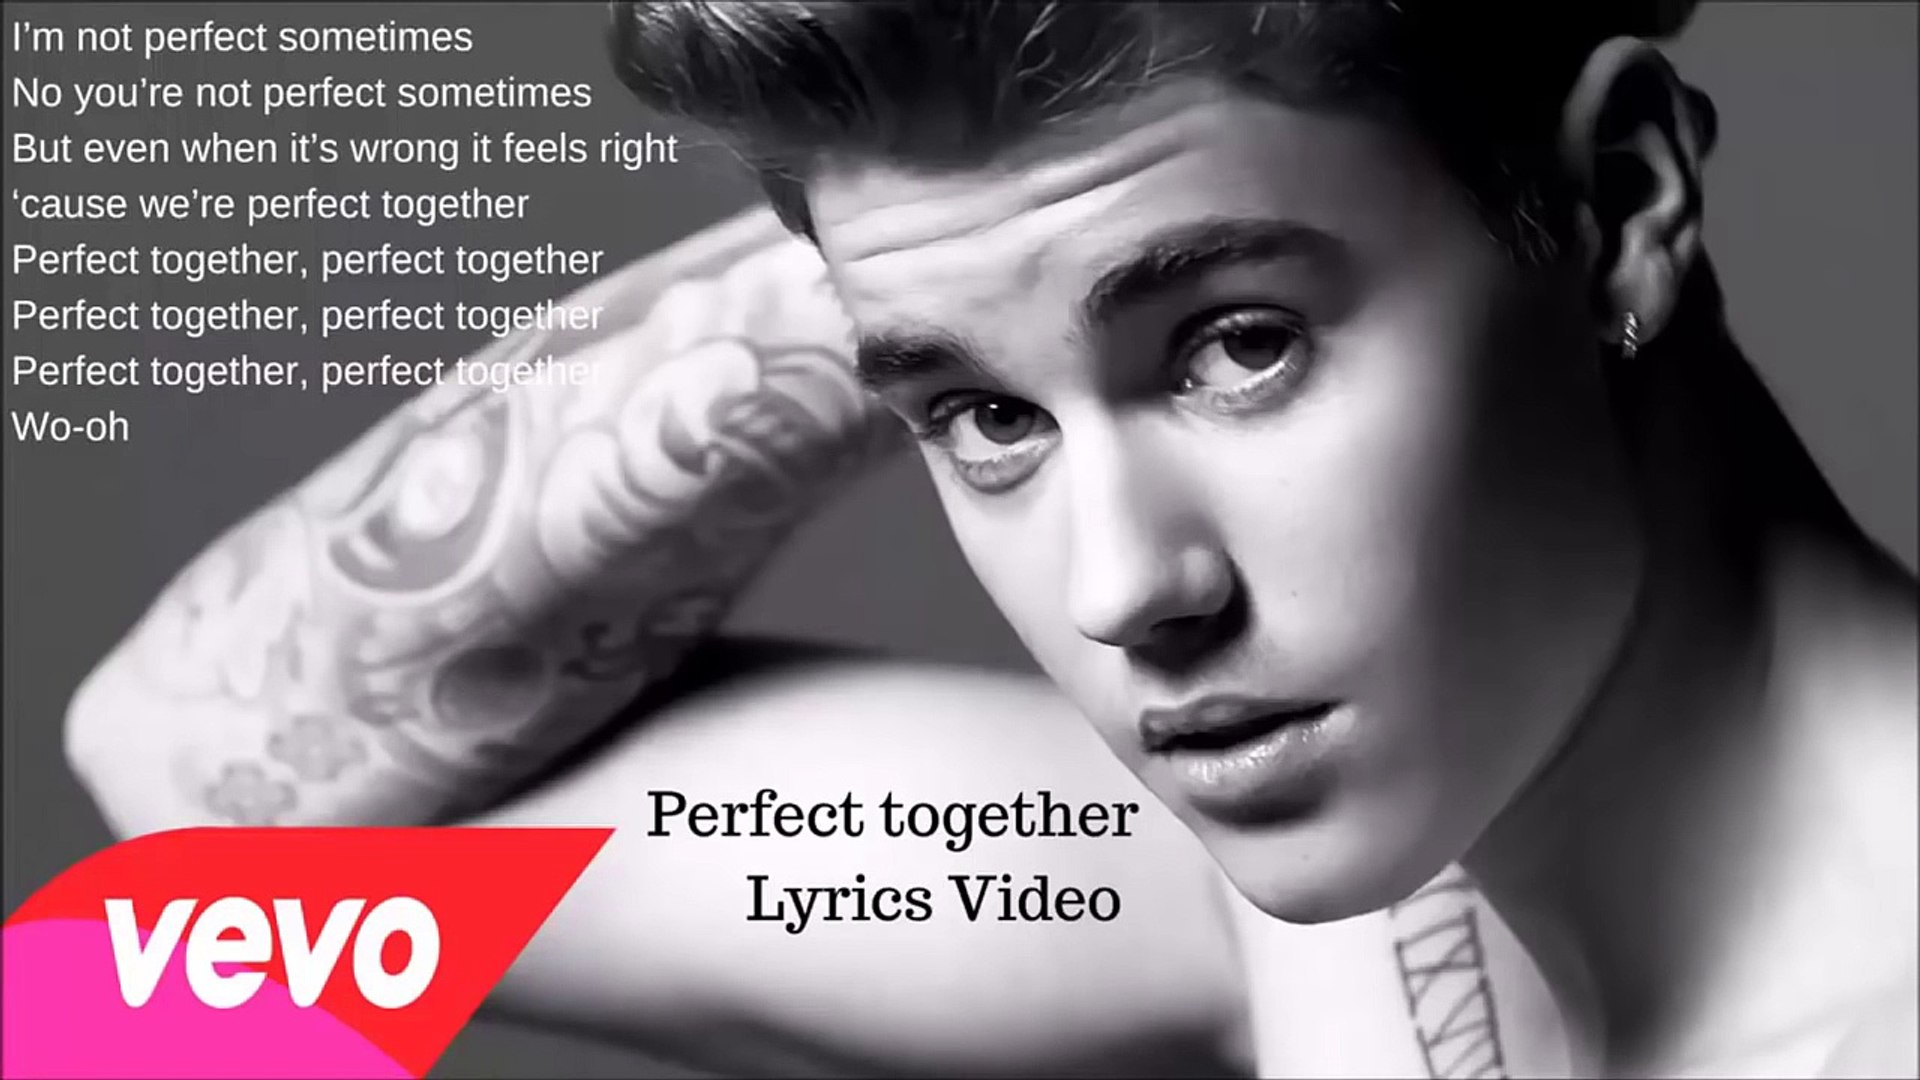 Justin Bieber New Song 2015 - PERFECT TOGETHER [Official Audio] - Justin Bieber 2015 - NEW SONG 2015